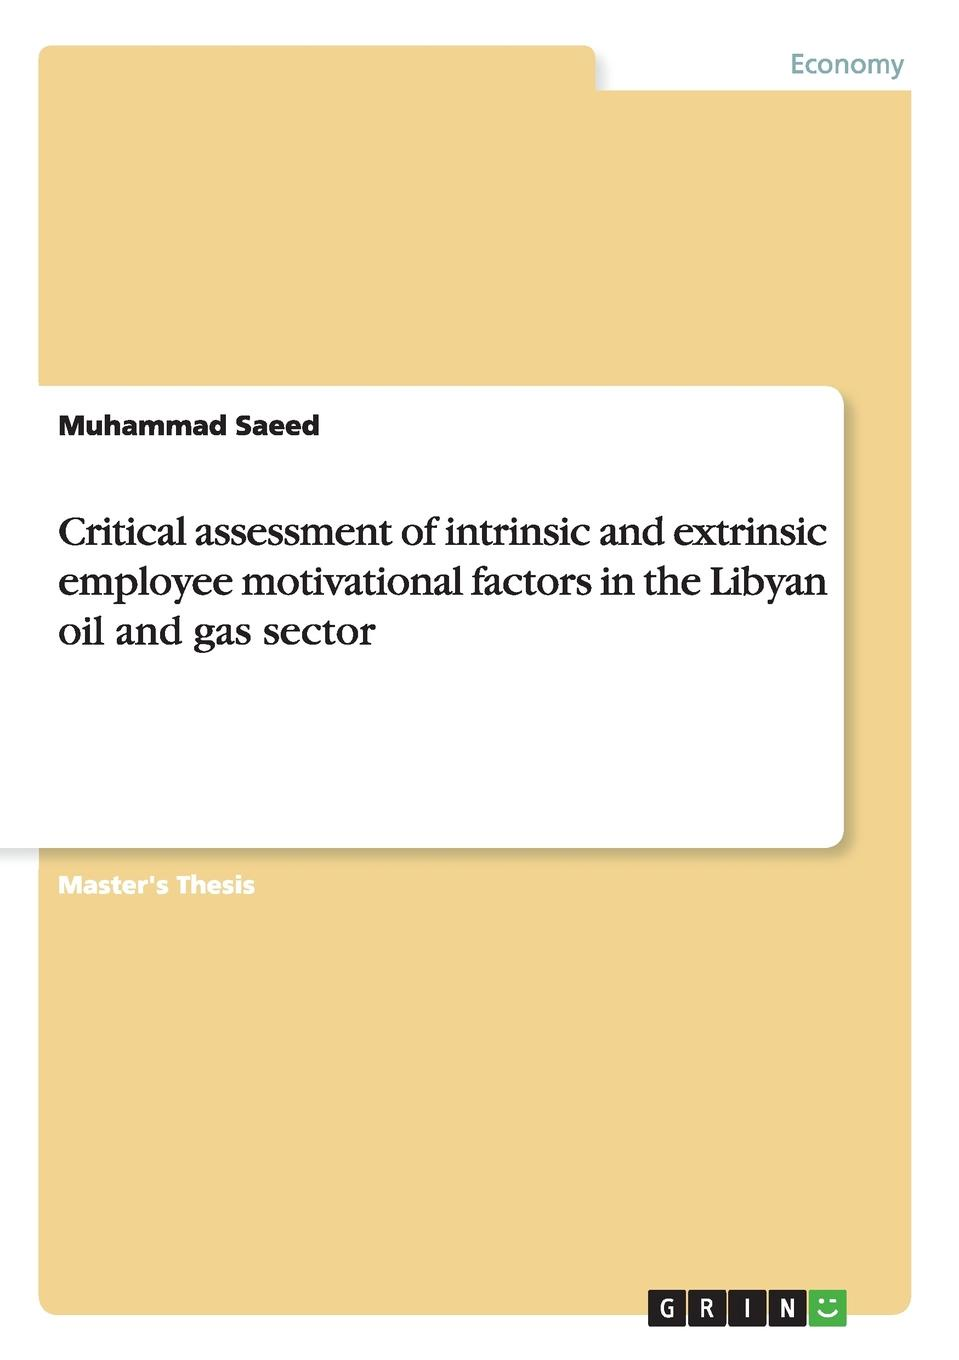 Muhammad Saeed Critical assessment of intrinsic and extrinsic employee motivational factors in the Libyan oil and gas sector muhammad naeem intrinsic versus extrinsic motivation and the effects of those types on employees